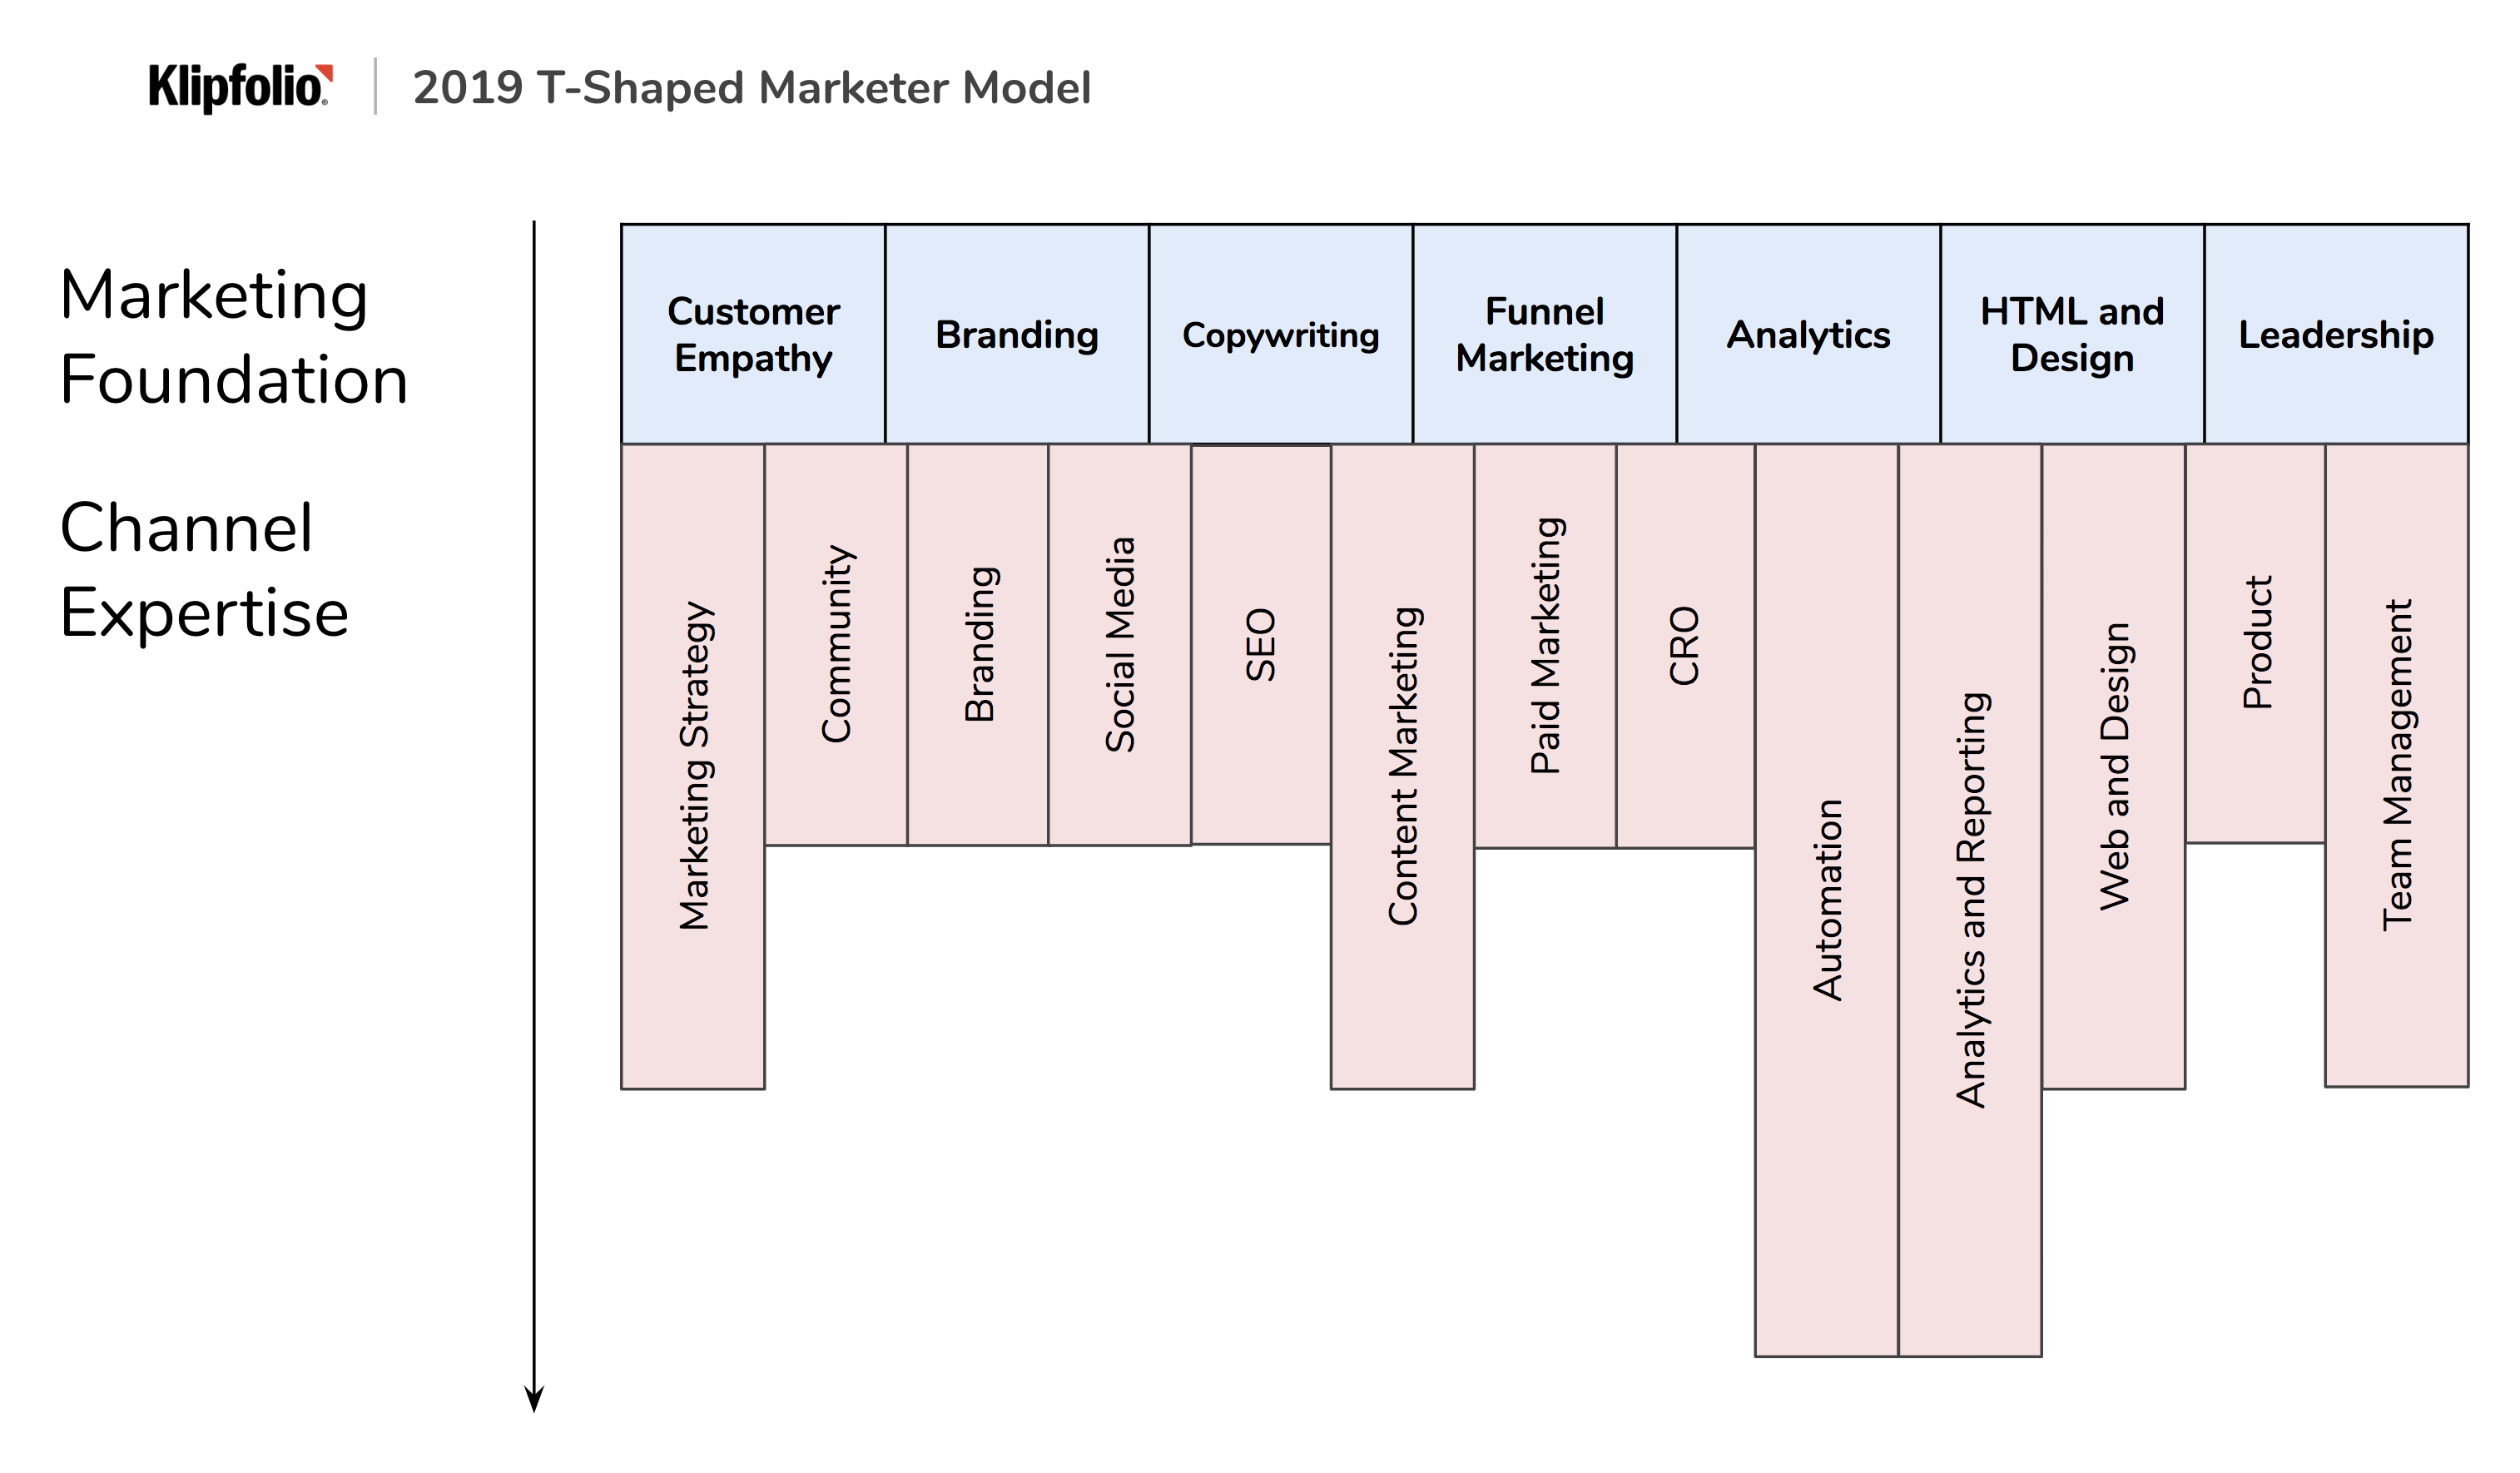 2019 t-shaped marketer model